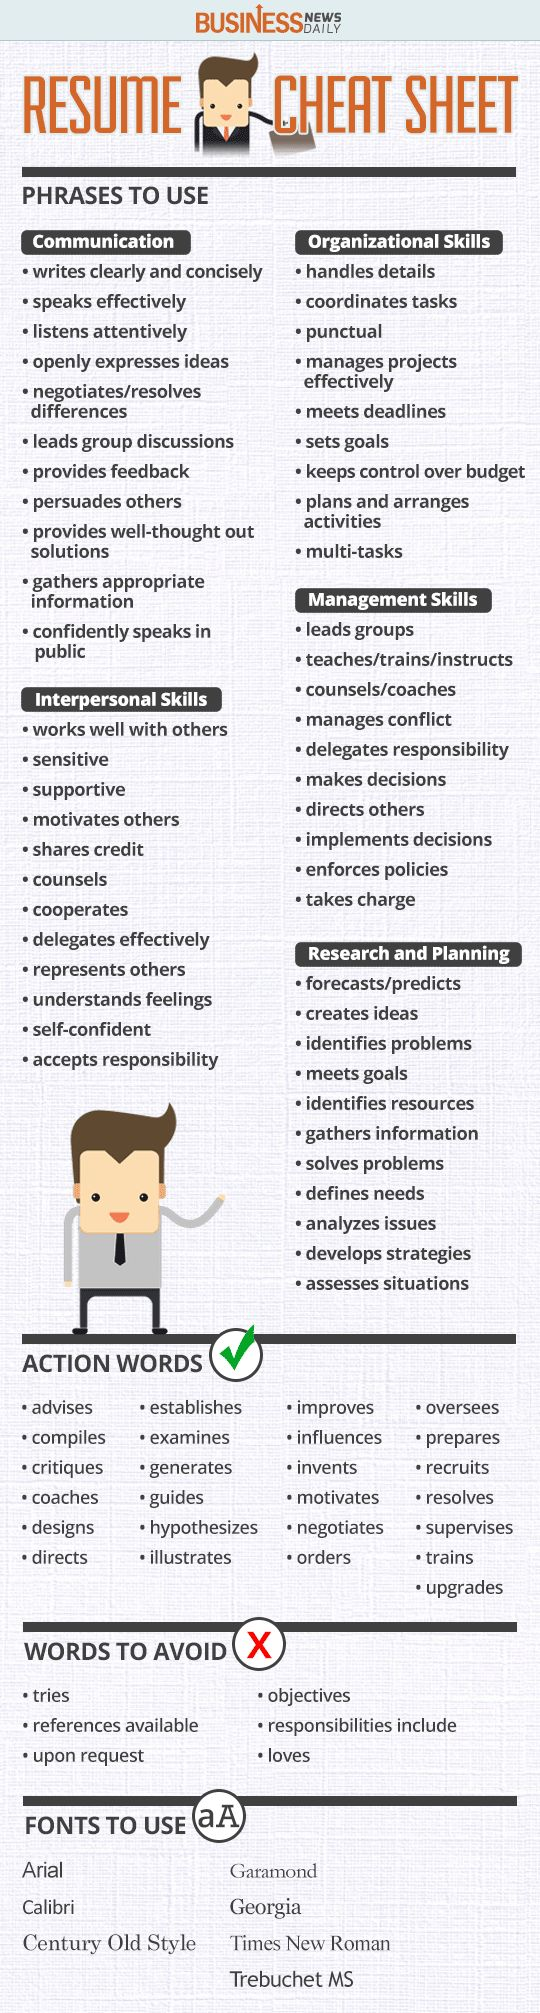 Picnictoimpeachus  Personable  Ideas About Resume On Pinterest  Cv Format Resume Cv And  With Fetching Resume Cheat Sheet Infographic Andrews Almost Done With A Complete Unit On Employment Which With Delightful Resume References Sample Also High School Resume For Jobs In Addition What Goes In A Cover Letter For A Resume And Creative Resume Templates Microsoft Word As Well As Software Quality Assurance Resume Additionally A Good Cover Letter For A Resume From Pinterestcom With Picnictoimpeachus  Fetching  Ideas About Resume On Pinterest  Cv Format Resume Cv And  With Delightful Resume Cheat Sheet Infographic Andrews Almost Done With A Complete Unit On Employment Which And Personable Resume References Sample Also High School Resume For Jobs In Addition What Goes In A Cover Letter For A Resume From Pinterestcom